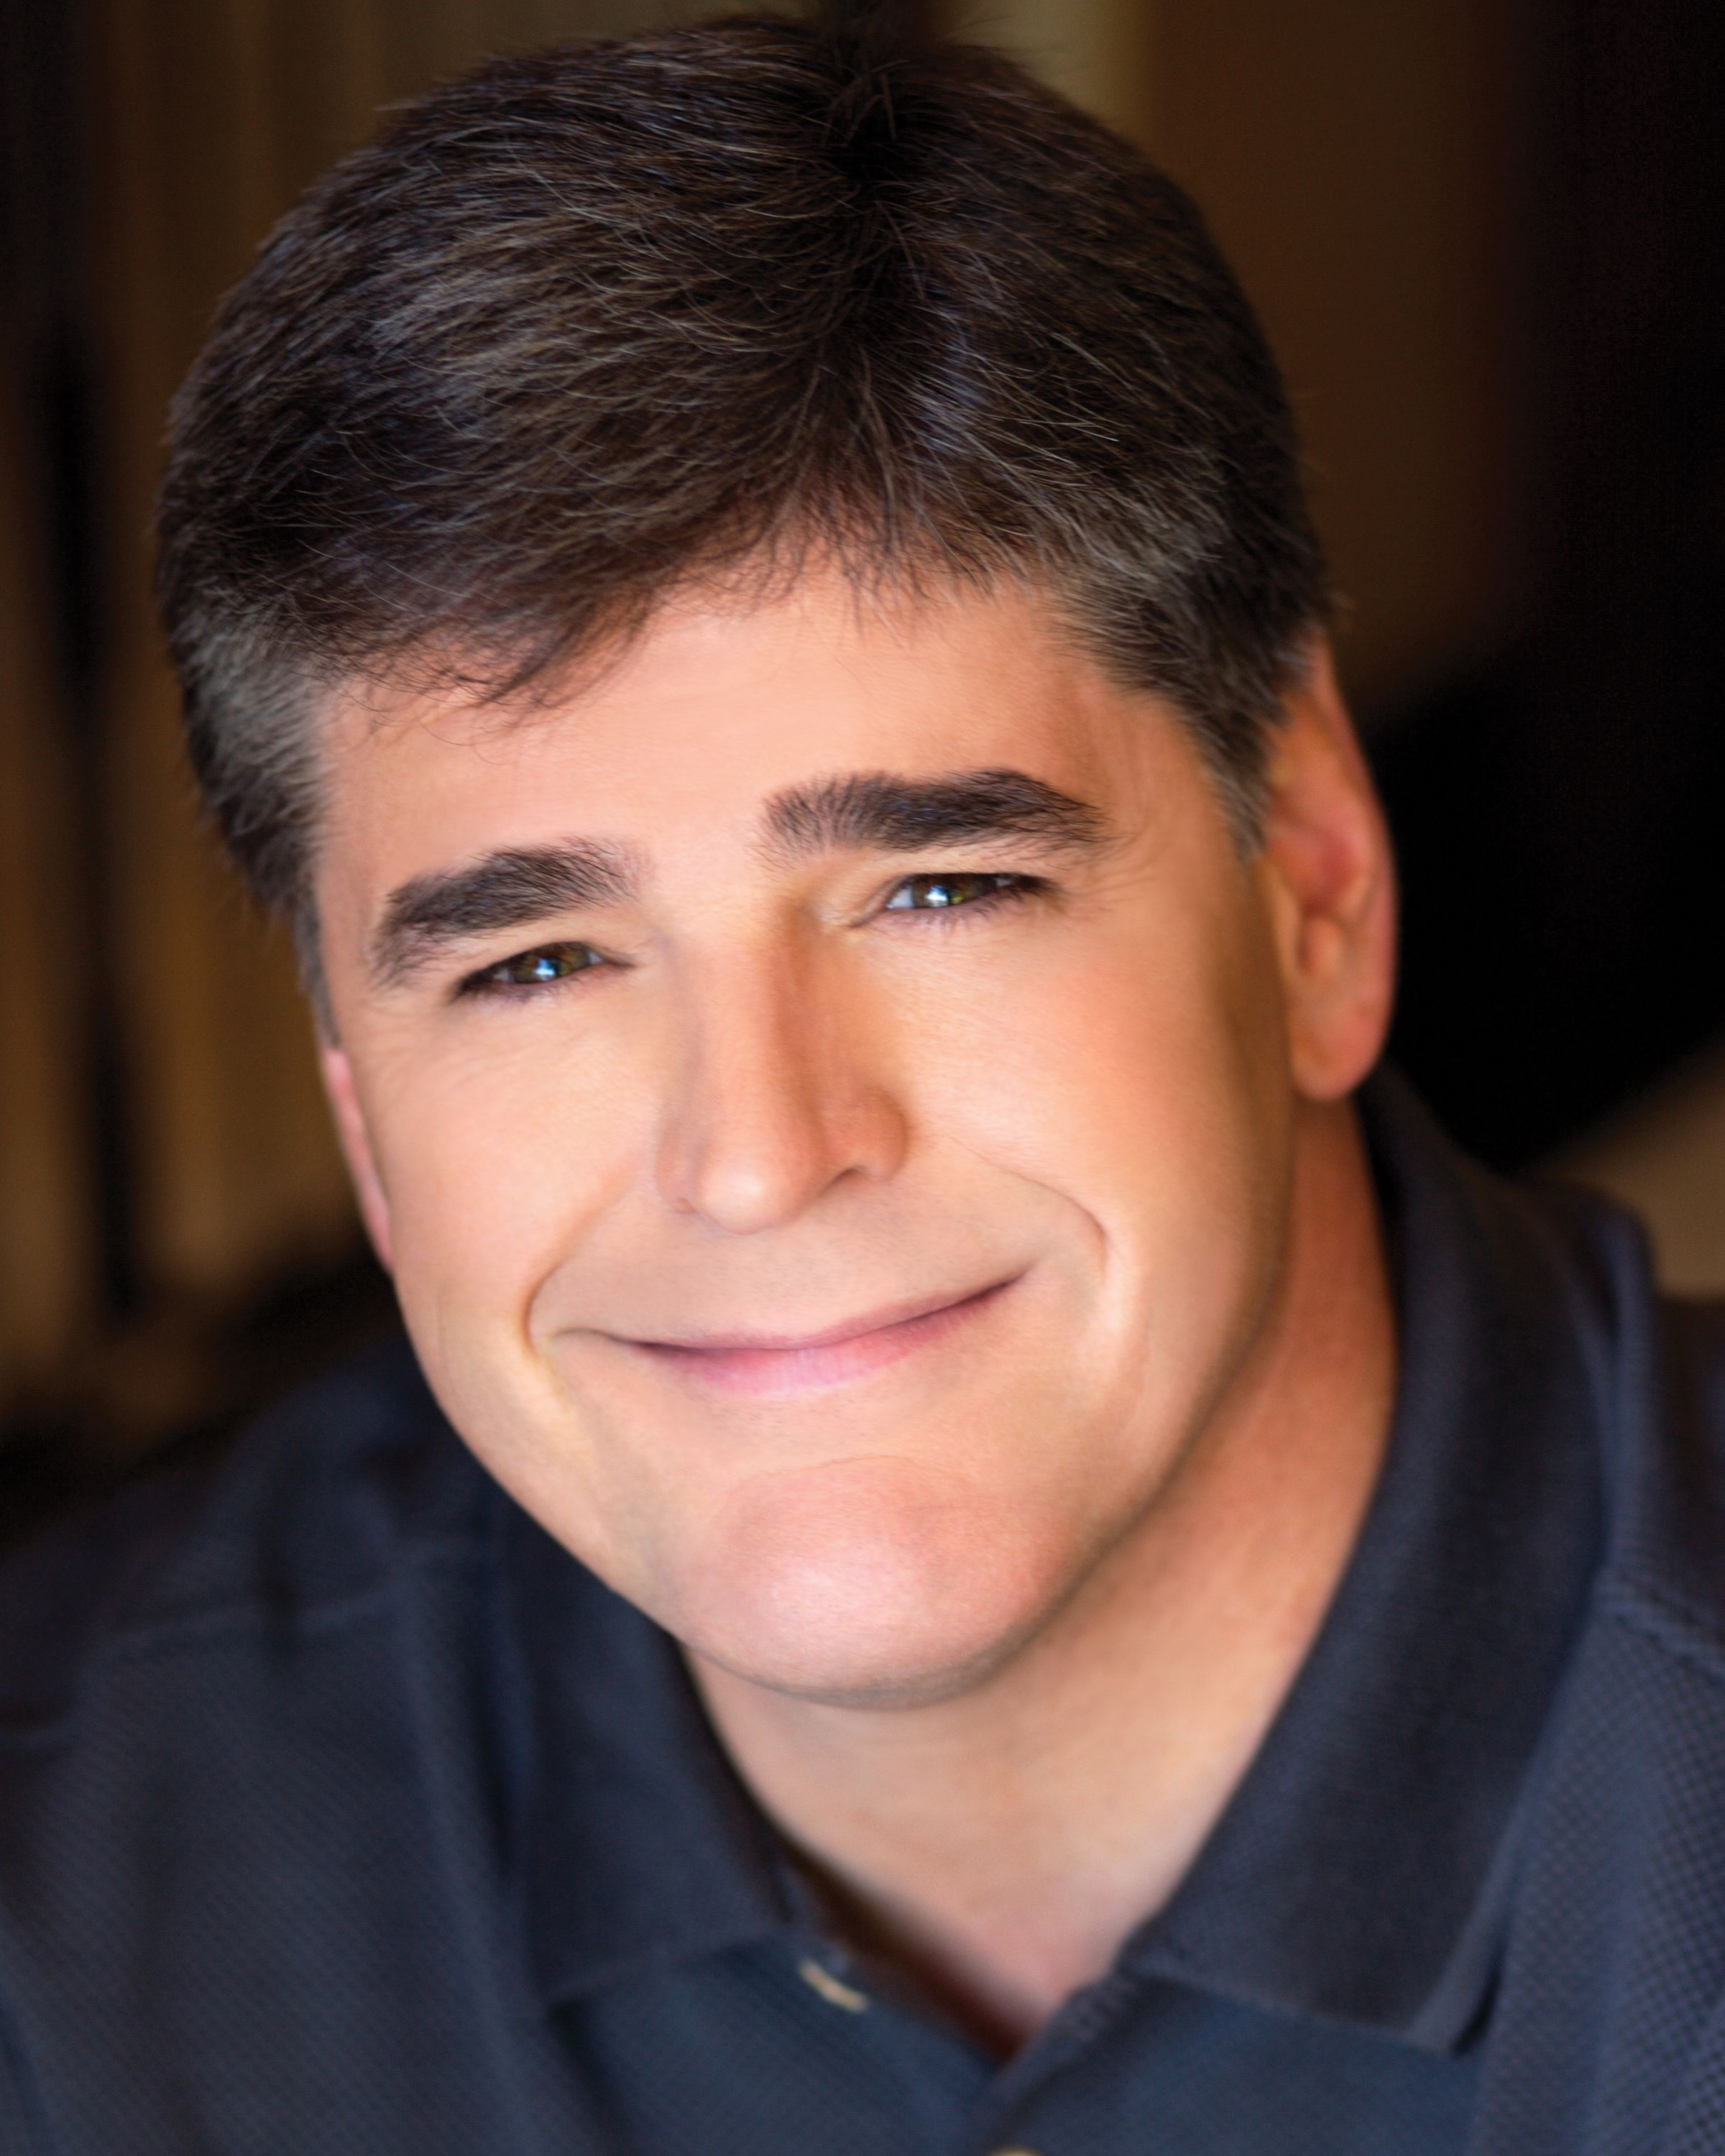 Sean Hannity, Fox News Contributor and lover of all things